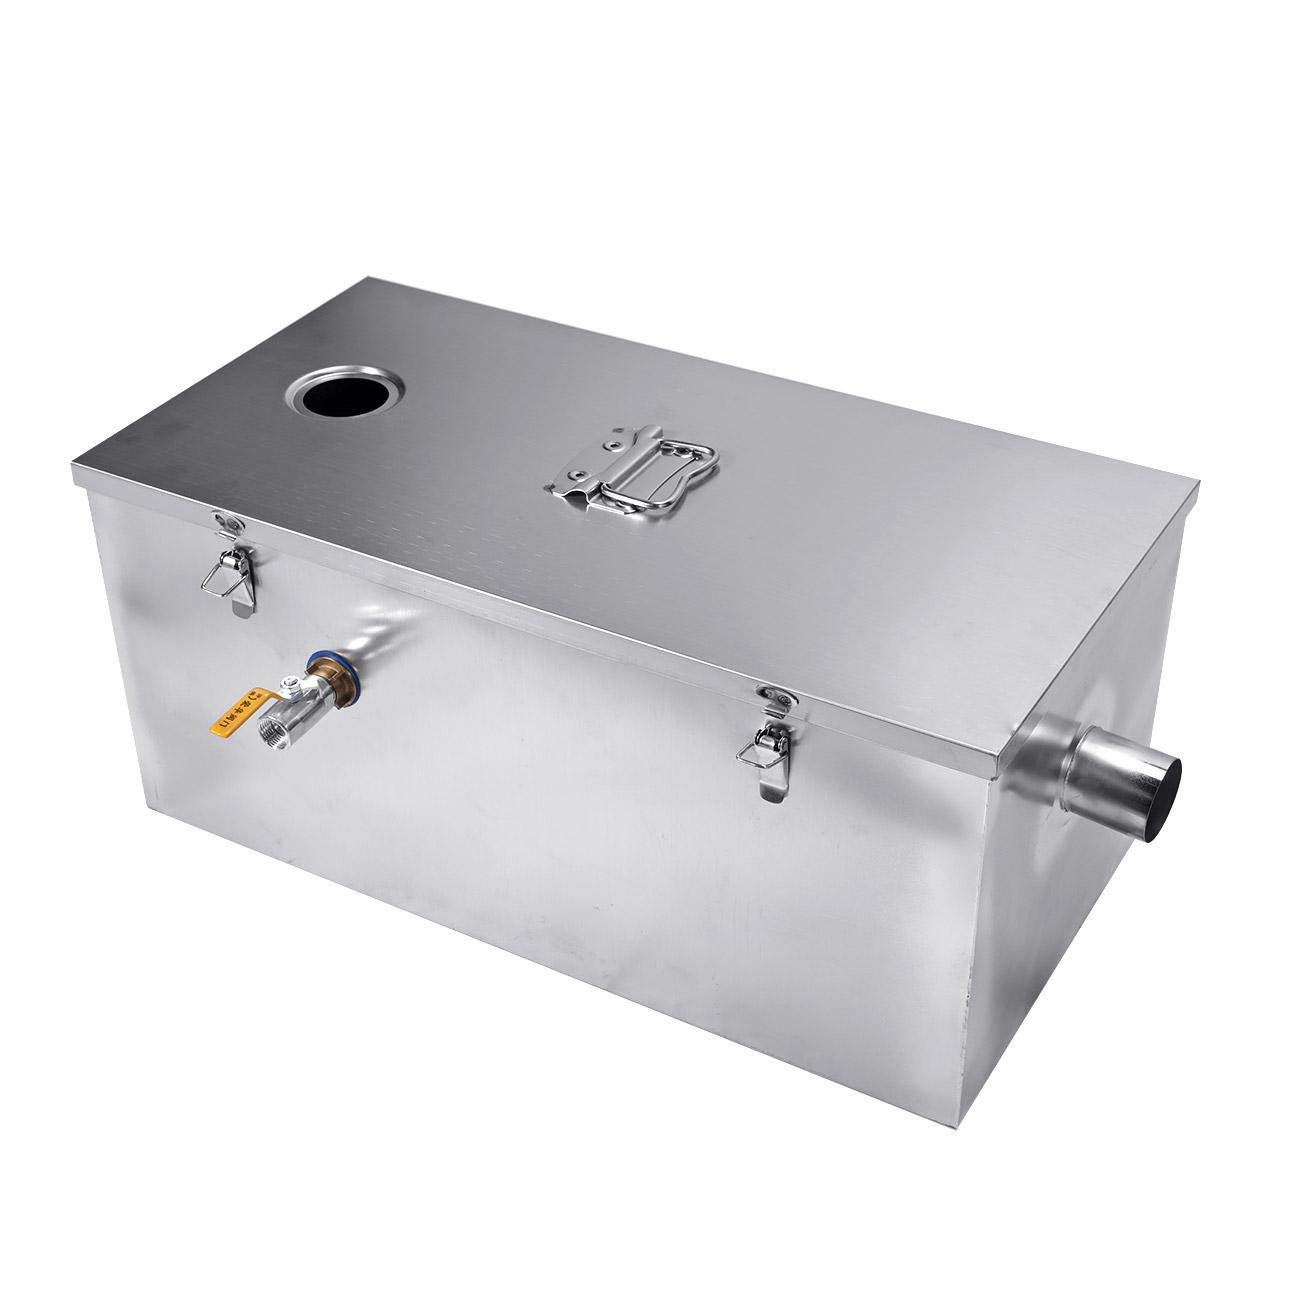 BEAMNOVA Commercial 25LB Grease Trap for Restaurants 13 Gallons Per Minute Stainless Steel Kitchen Interceptor